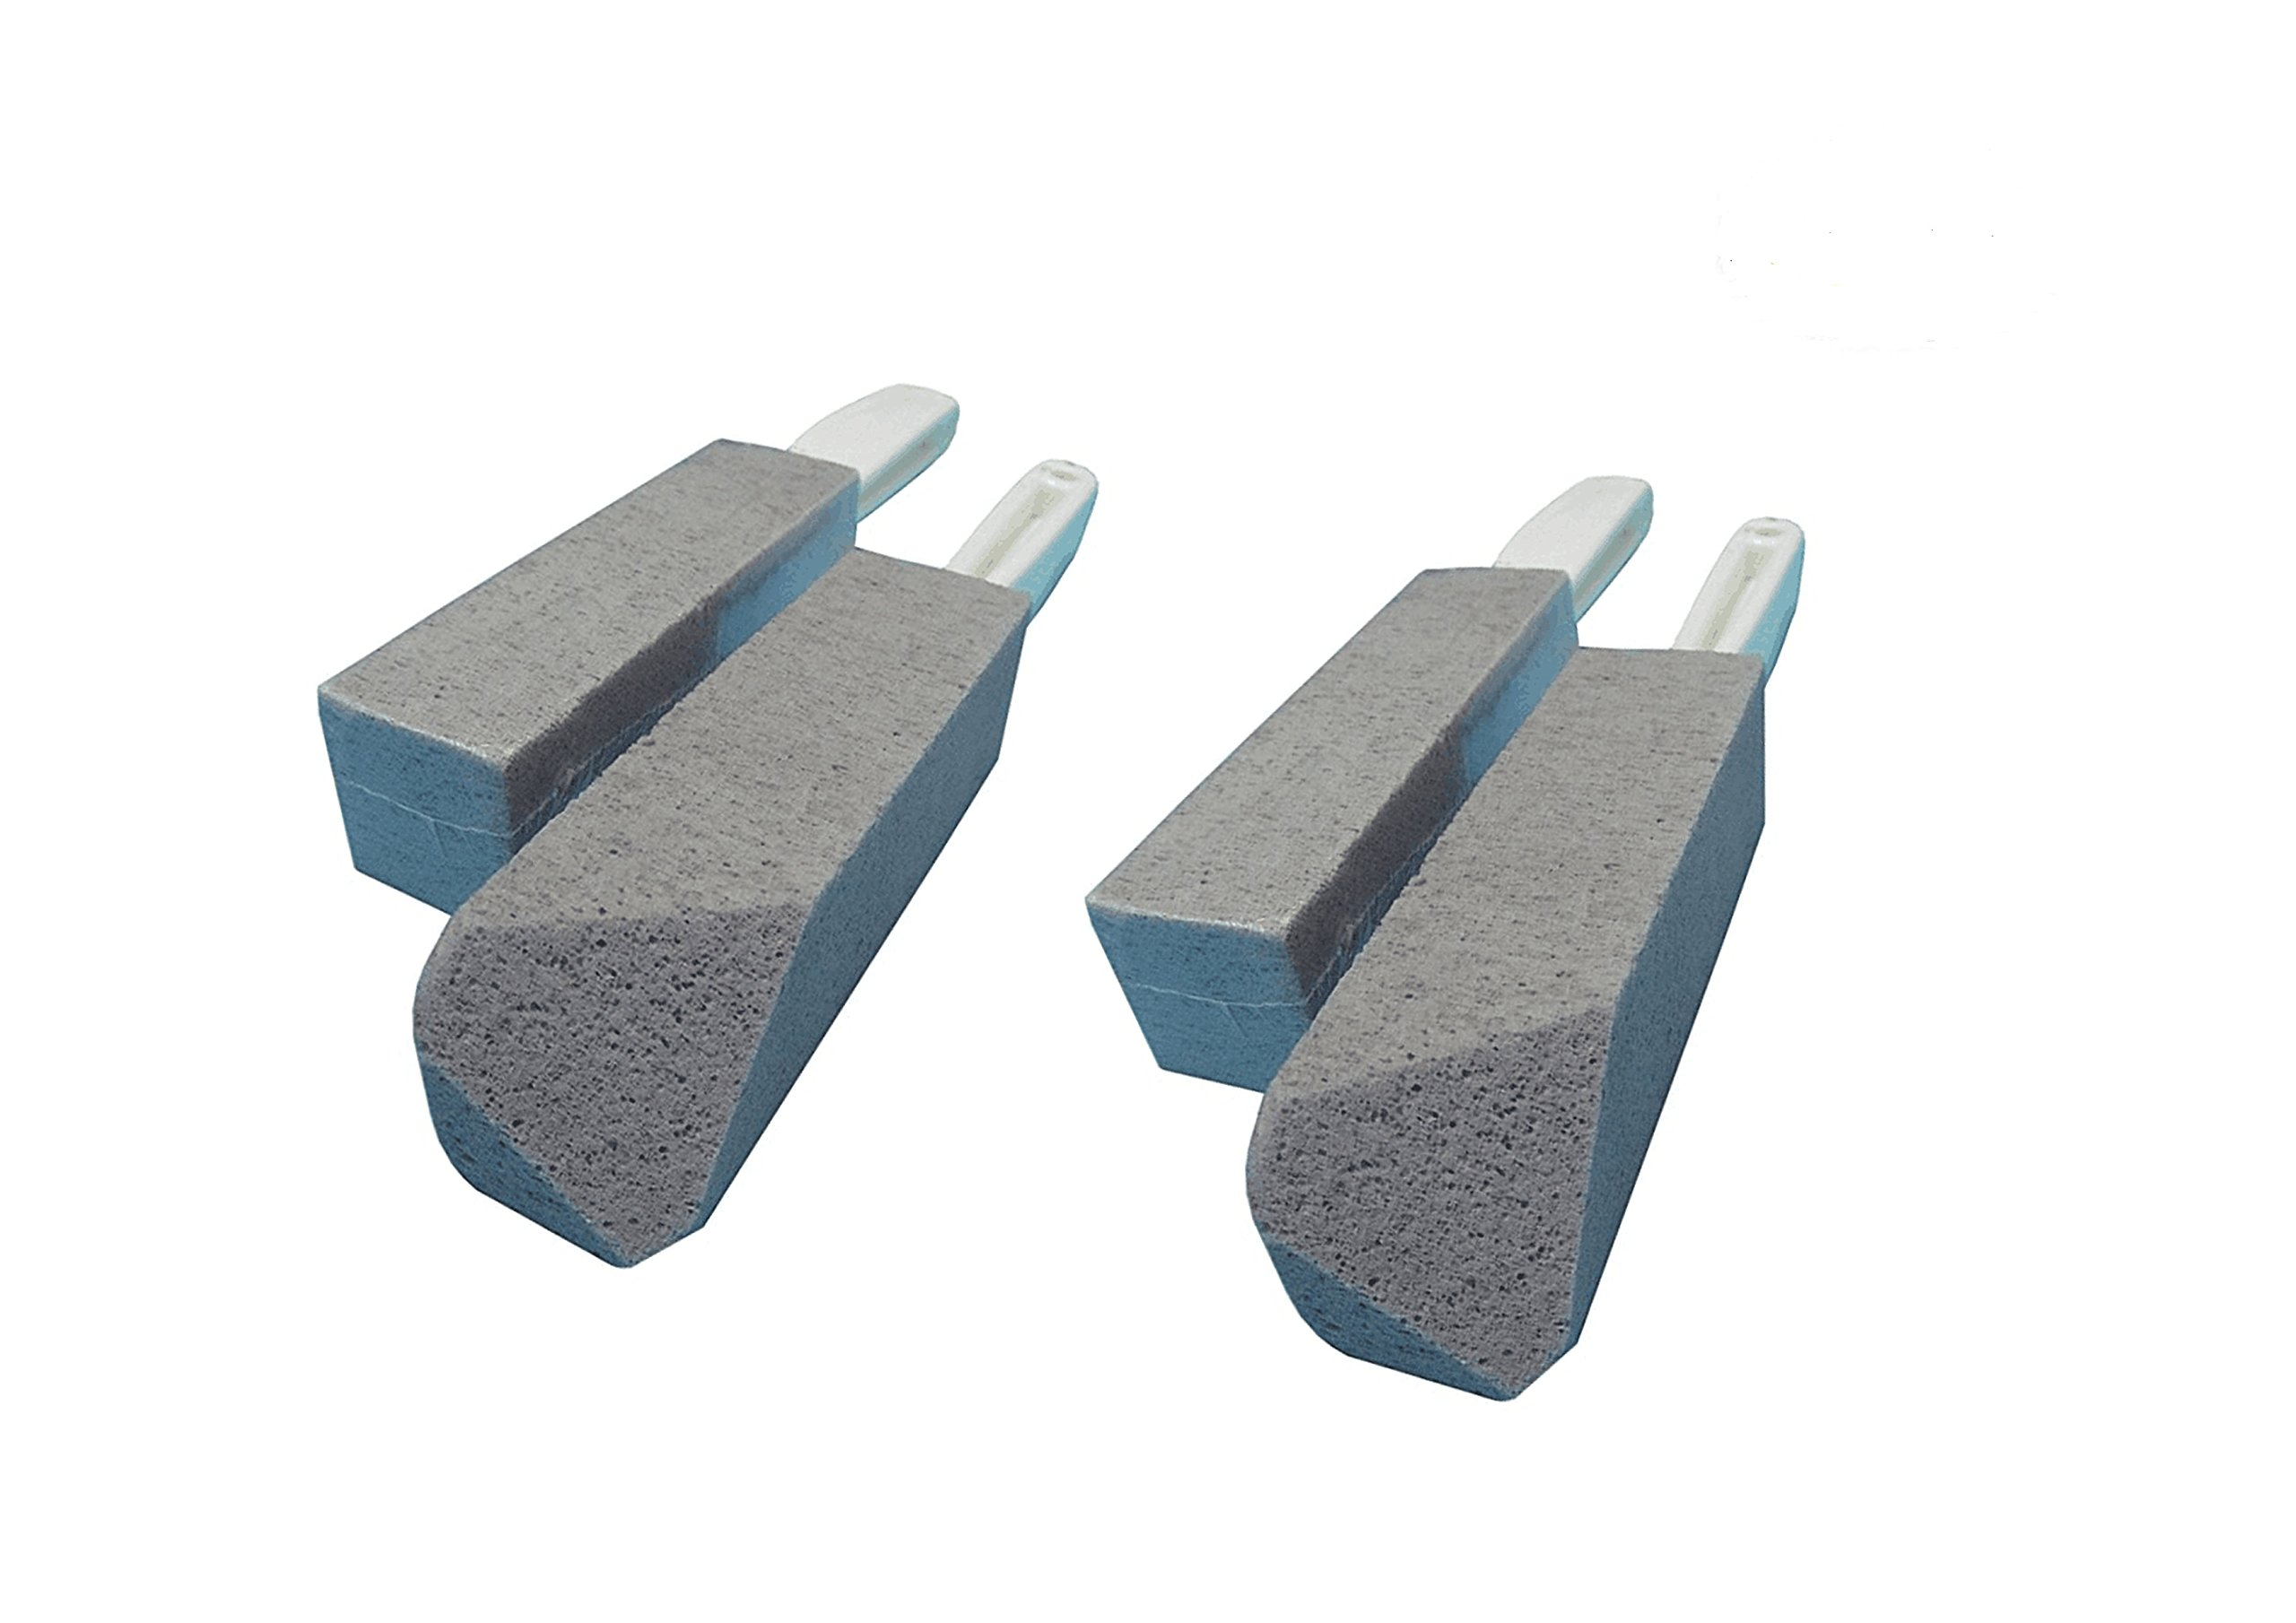 Bestsupplier 4 Pack Pumice Cleaning Stone, Toilet Bowl Pumice Cleaning Stone with Handle Stains and Hard Water Ring Remover Rust Grill Griddle Cleaner for Kitchen/Bath/Pool/Spa/Household Cleaning